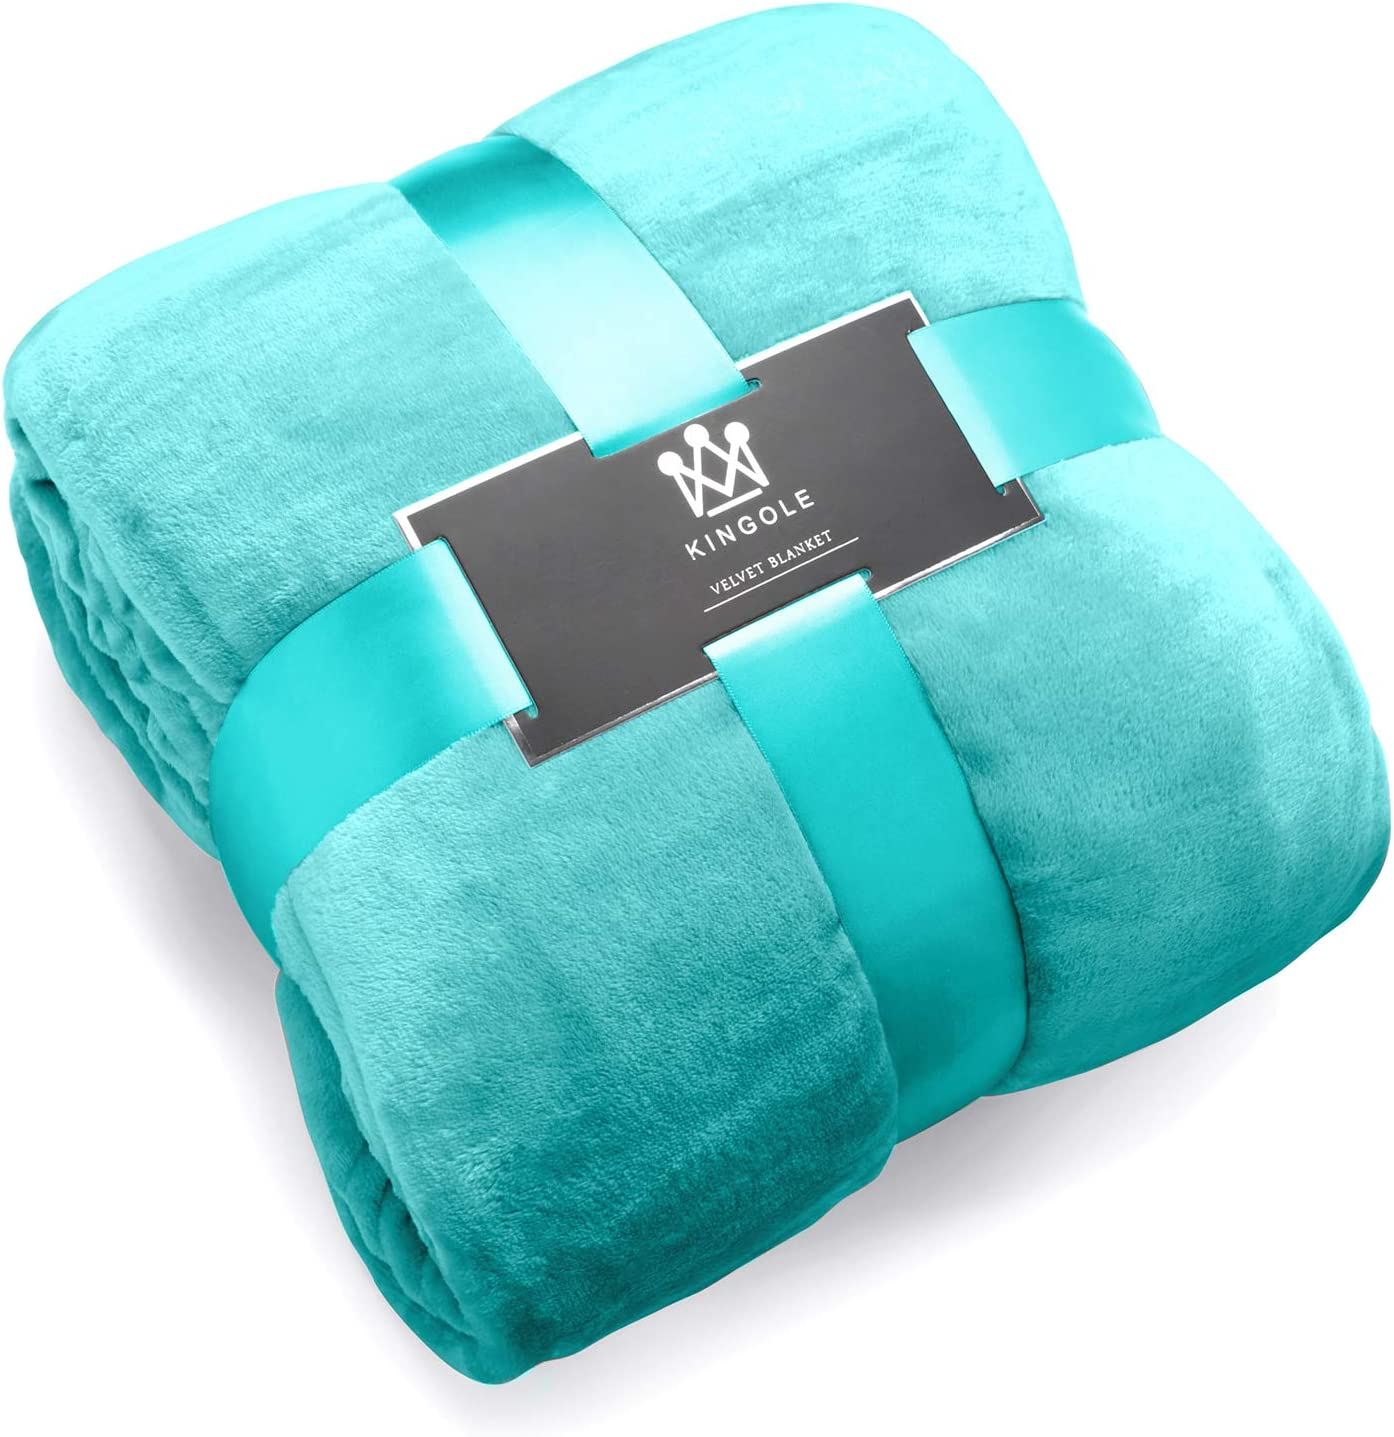 Kingole Flannel Fleece Microfiber Throw Blanket, Luxury Teal King Size Lightweight Cozy Couch Bed Super Soft and Warm Plush Solid Color 350GSM (108 x 90 inches)